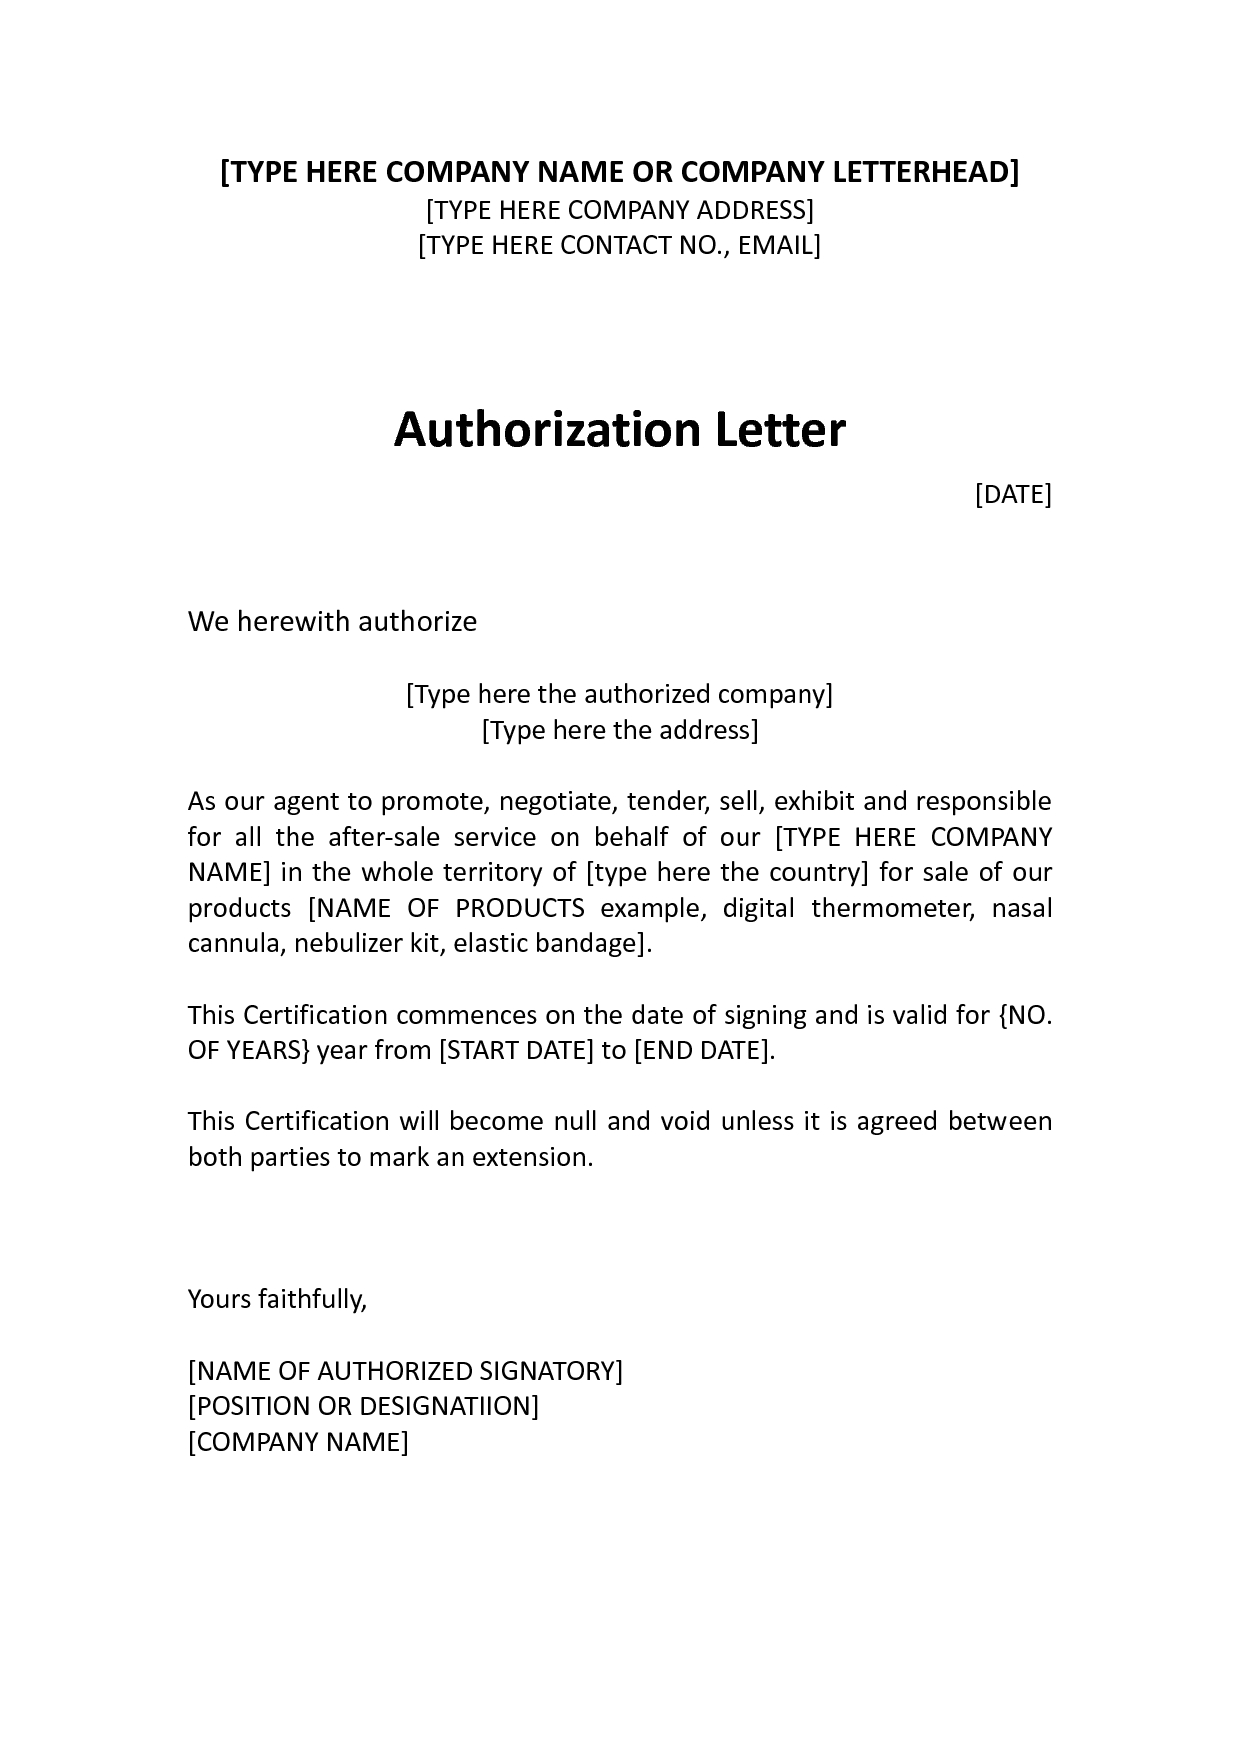 Charitable Contribution Letter Template - Authorization Distributor Letter Sample Distributor Dealer